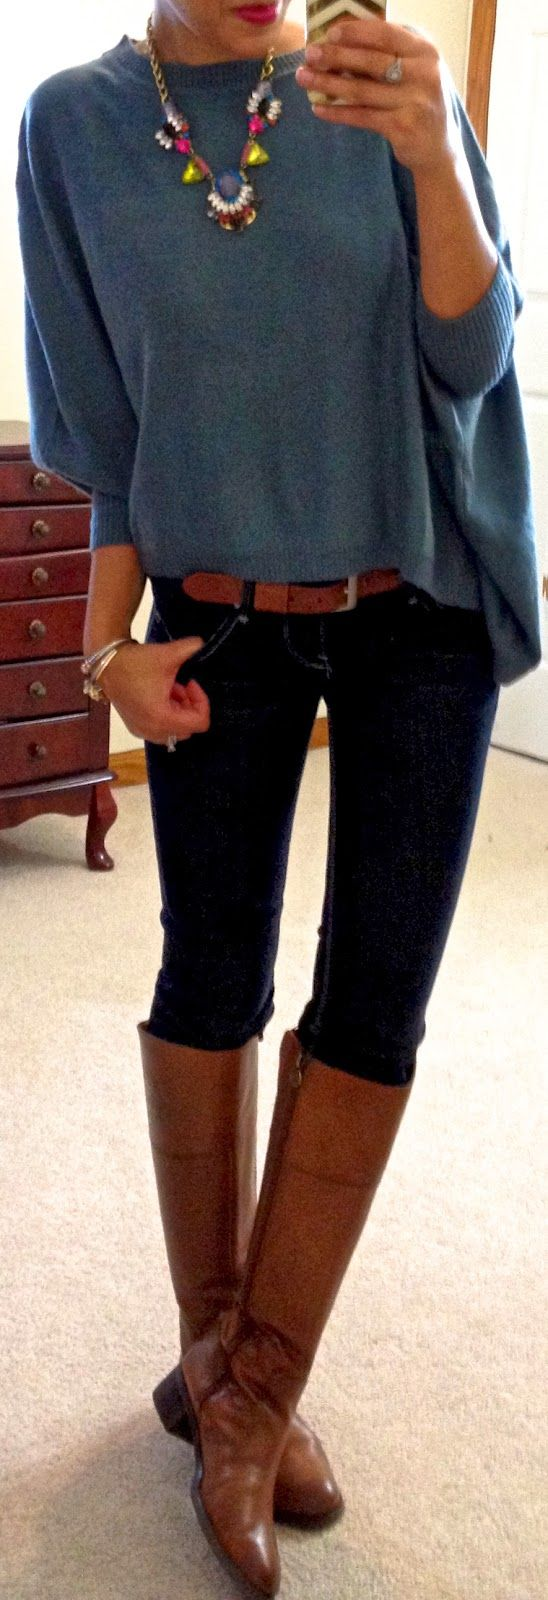 """Hello, Gorgeous!: threads. Teal rectangle sweater c/o Catch Bliss Boutique Dark-wash skinny jeans Brown belt Brown riding boots """"Yasi"""" necklace c/o Accessory Mercado Cuffs c/o Bauble Boutique"""